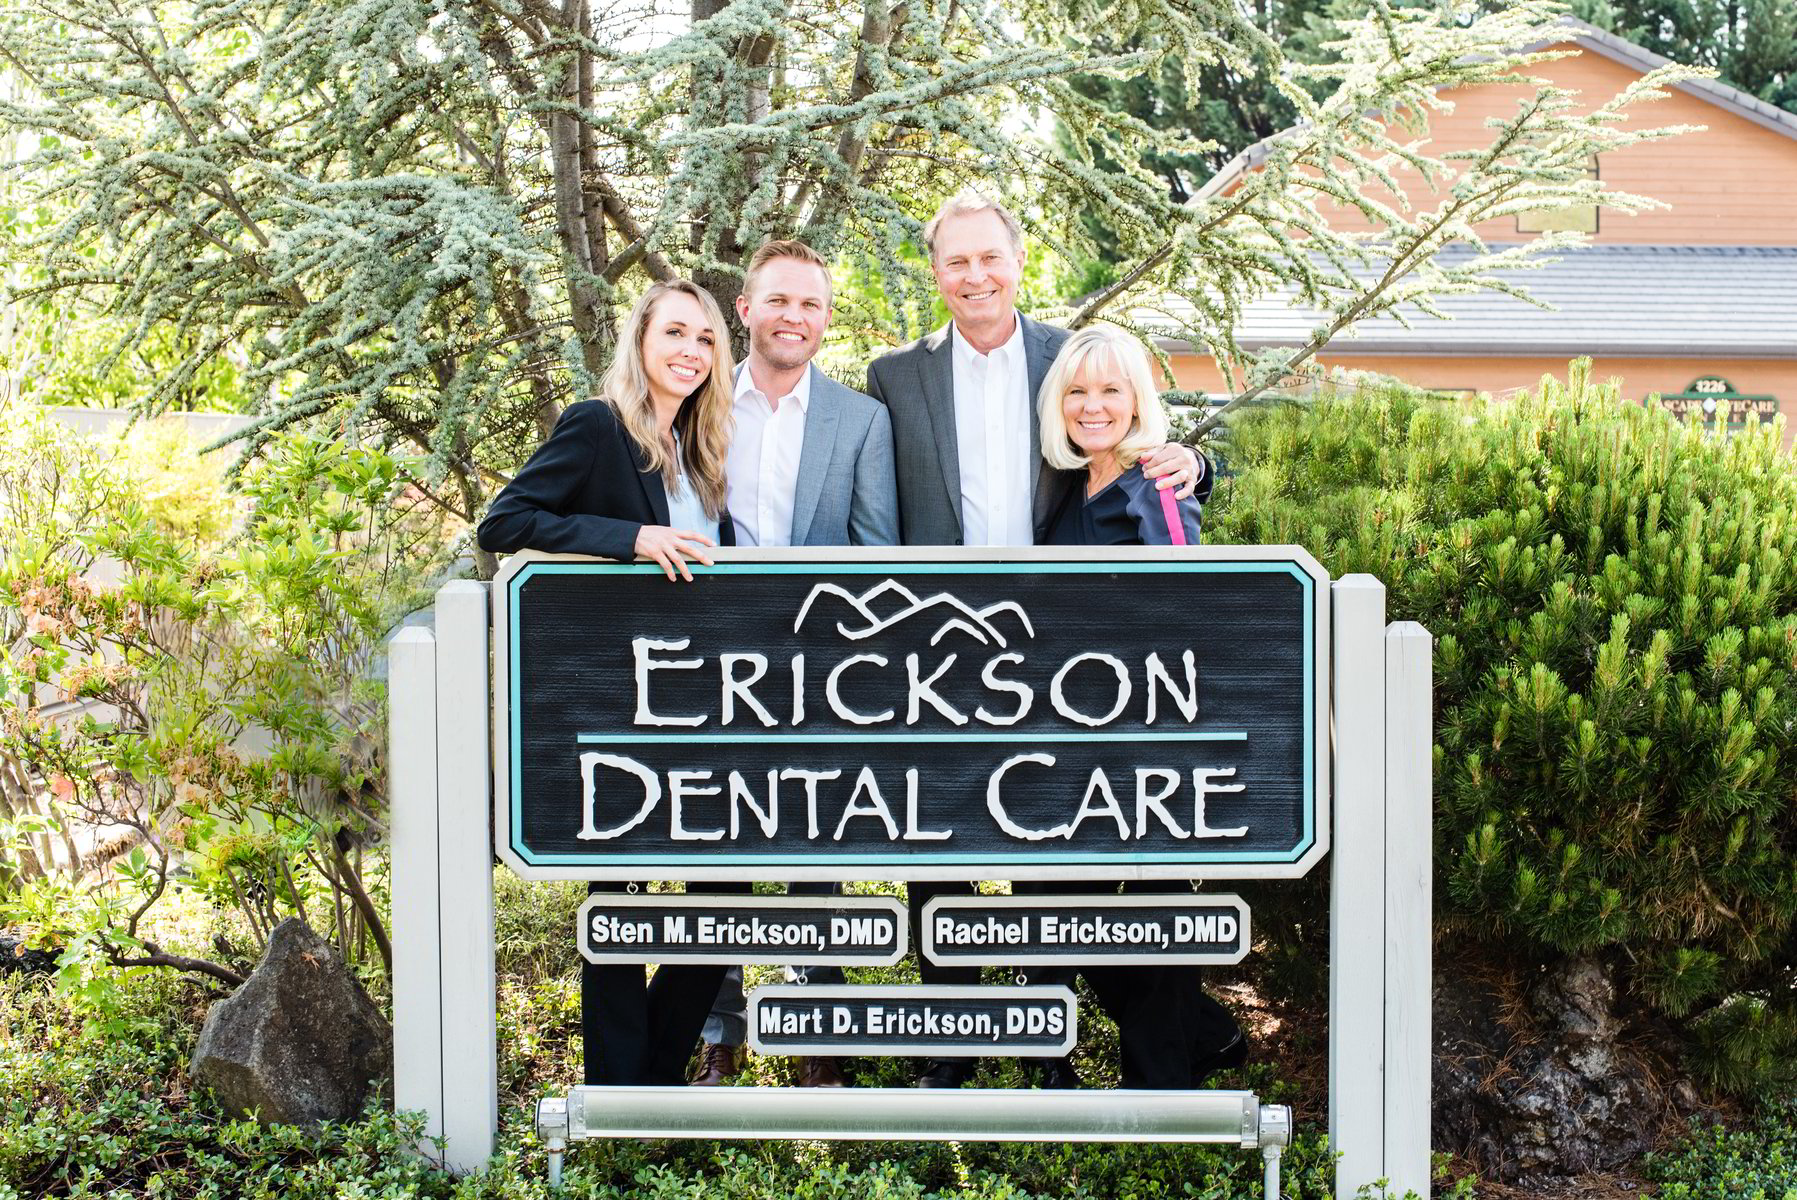 About Our Team - Erickson Dental Care Grants Pass, OR